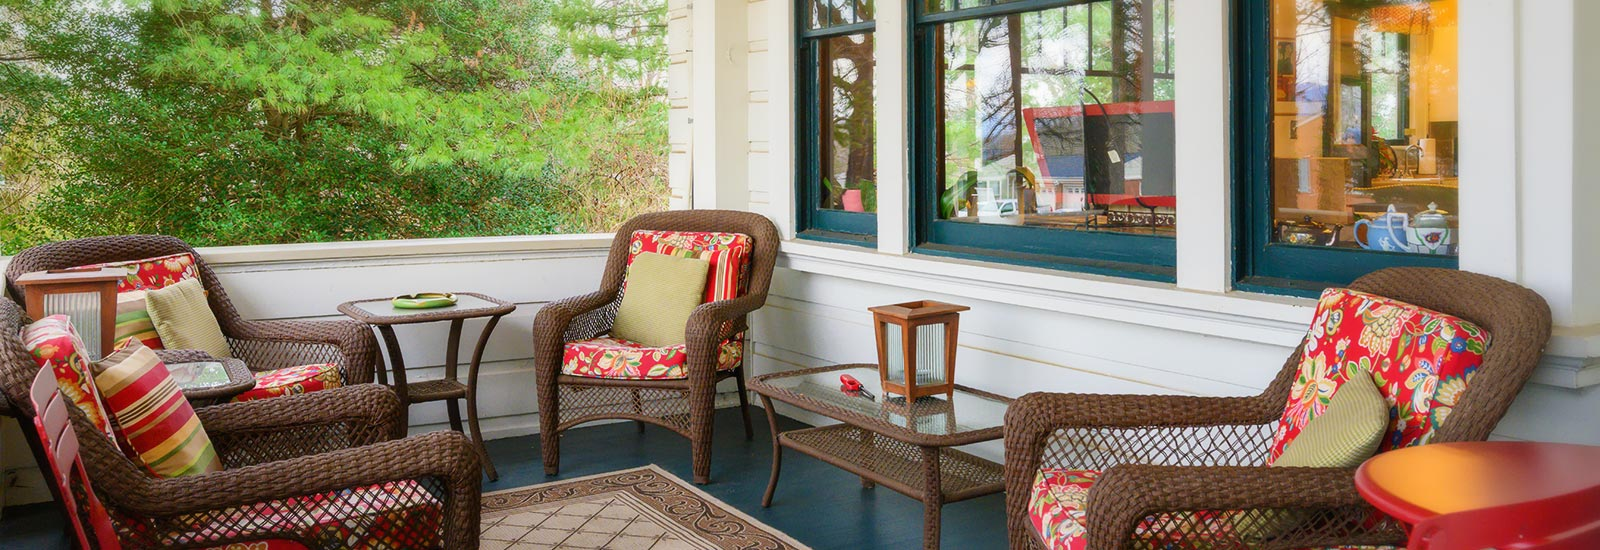 Oakland Cottage porch